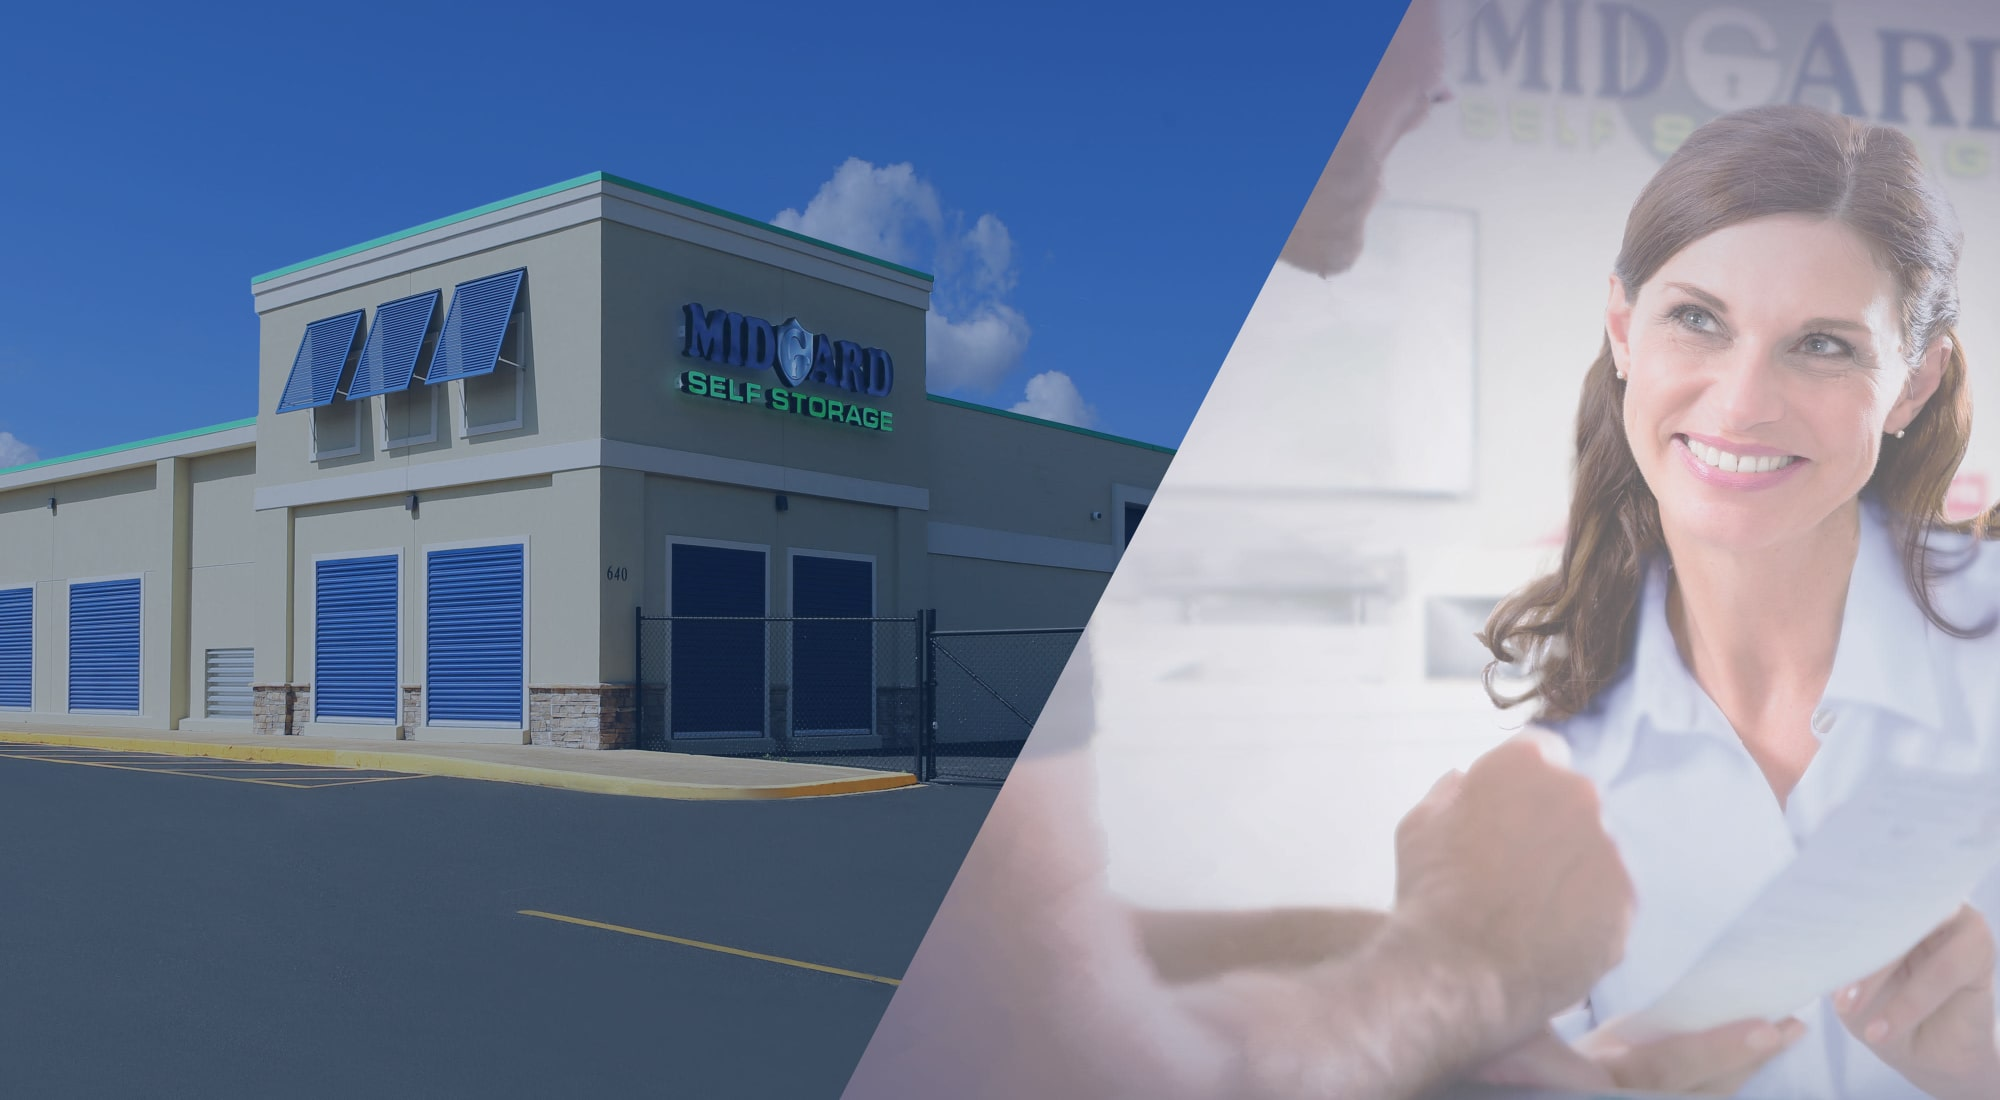 Self storage at Midgard Self Storage in Greenville, South Carolina